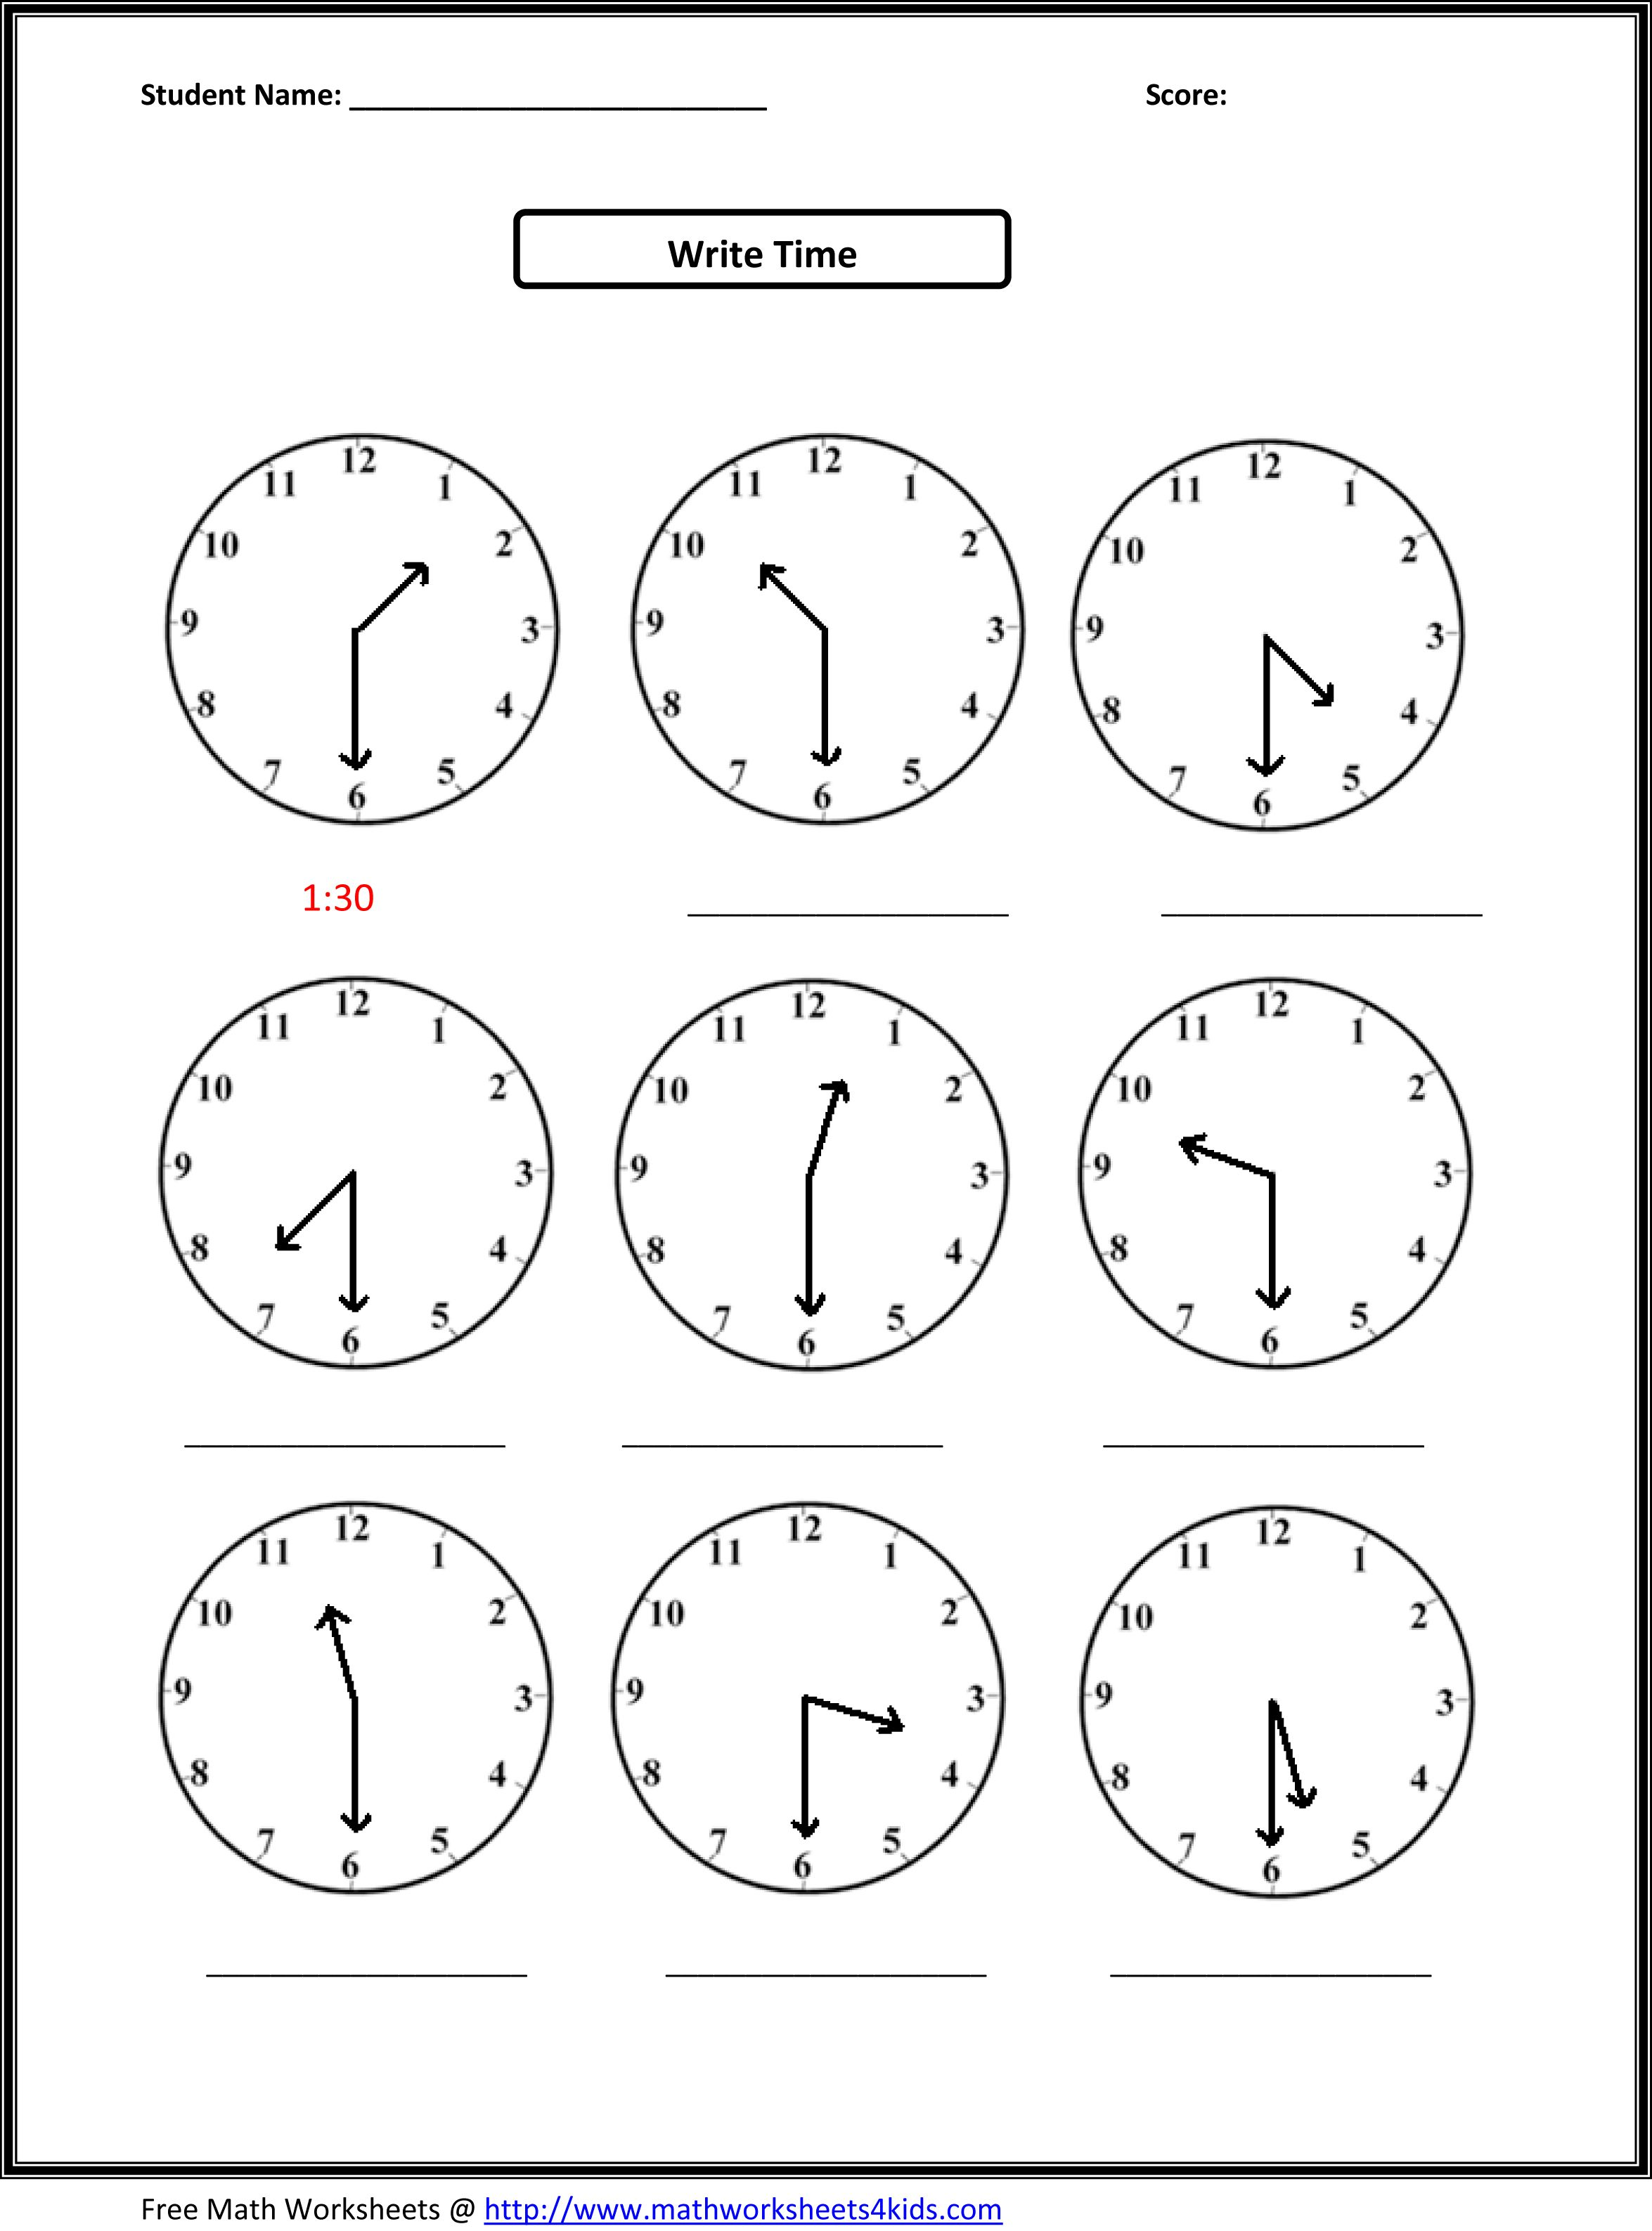 Proatmealus  Pleasing Worksheet On Time For Grade   Reocurent With Exquisite Free Printable Telling Time Worksheets Nd Grade  Reocurent With Amazing Pythagoras Theorem Word Problems Worksheets Also Hansel And Gretel Worksheet In Addition  Square Writing Worksheets And Handwriting Worksheet Maker Free Download As Well As  Digit Subtraction With Regrouping Worksheet Additionally Verbs Past Tense Worksheet From Reocurentcom With Proatmealus  Exquisite Worksheet On Time For Grade   Reocurent With Amazing Free Printable Telling Time Worksheets Nd Grade  Reocurent And Pleasing Pythagoras Theorem Word Problems Worksheets Also Hansel And Gretel Worksheet In Addition  Square Writing Worksheets From Reocurentcom